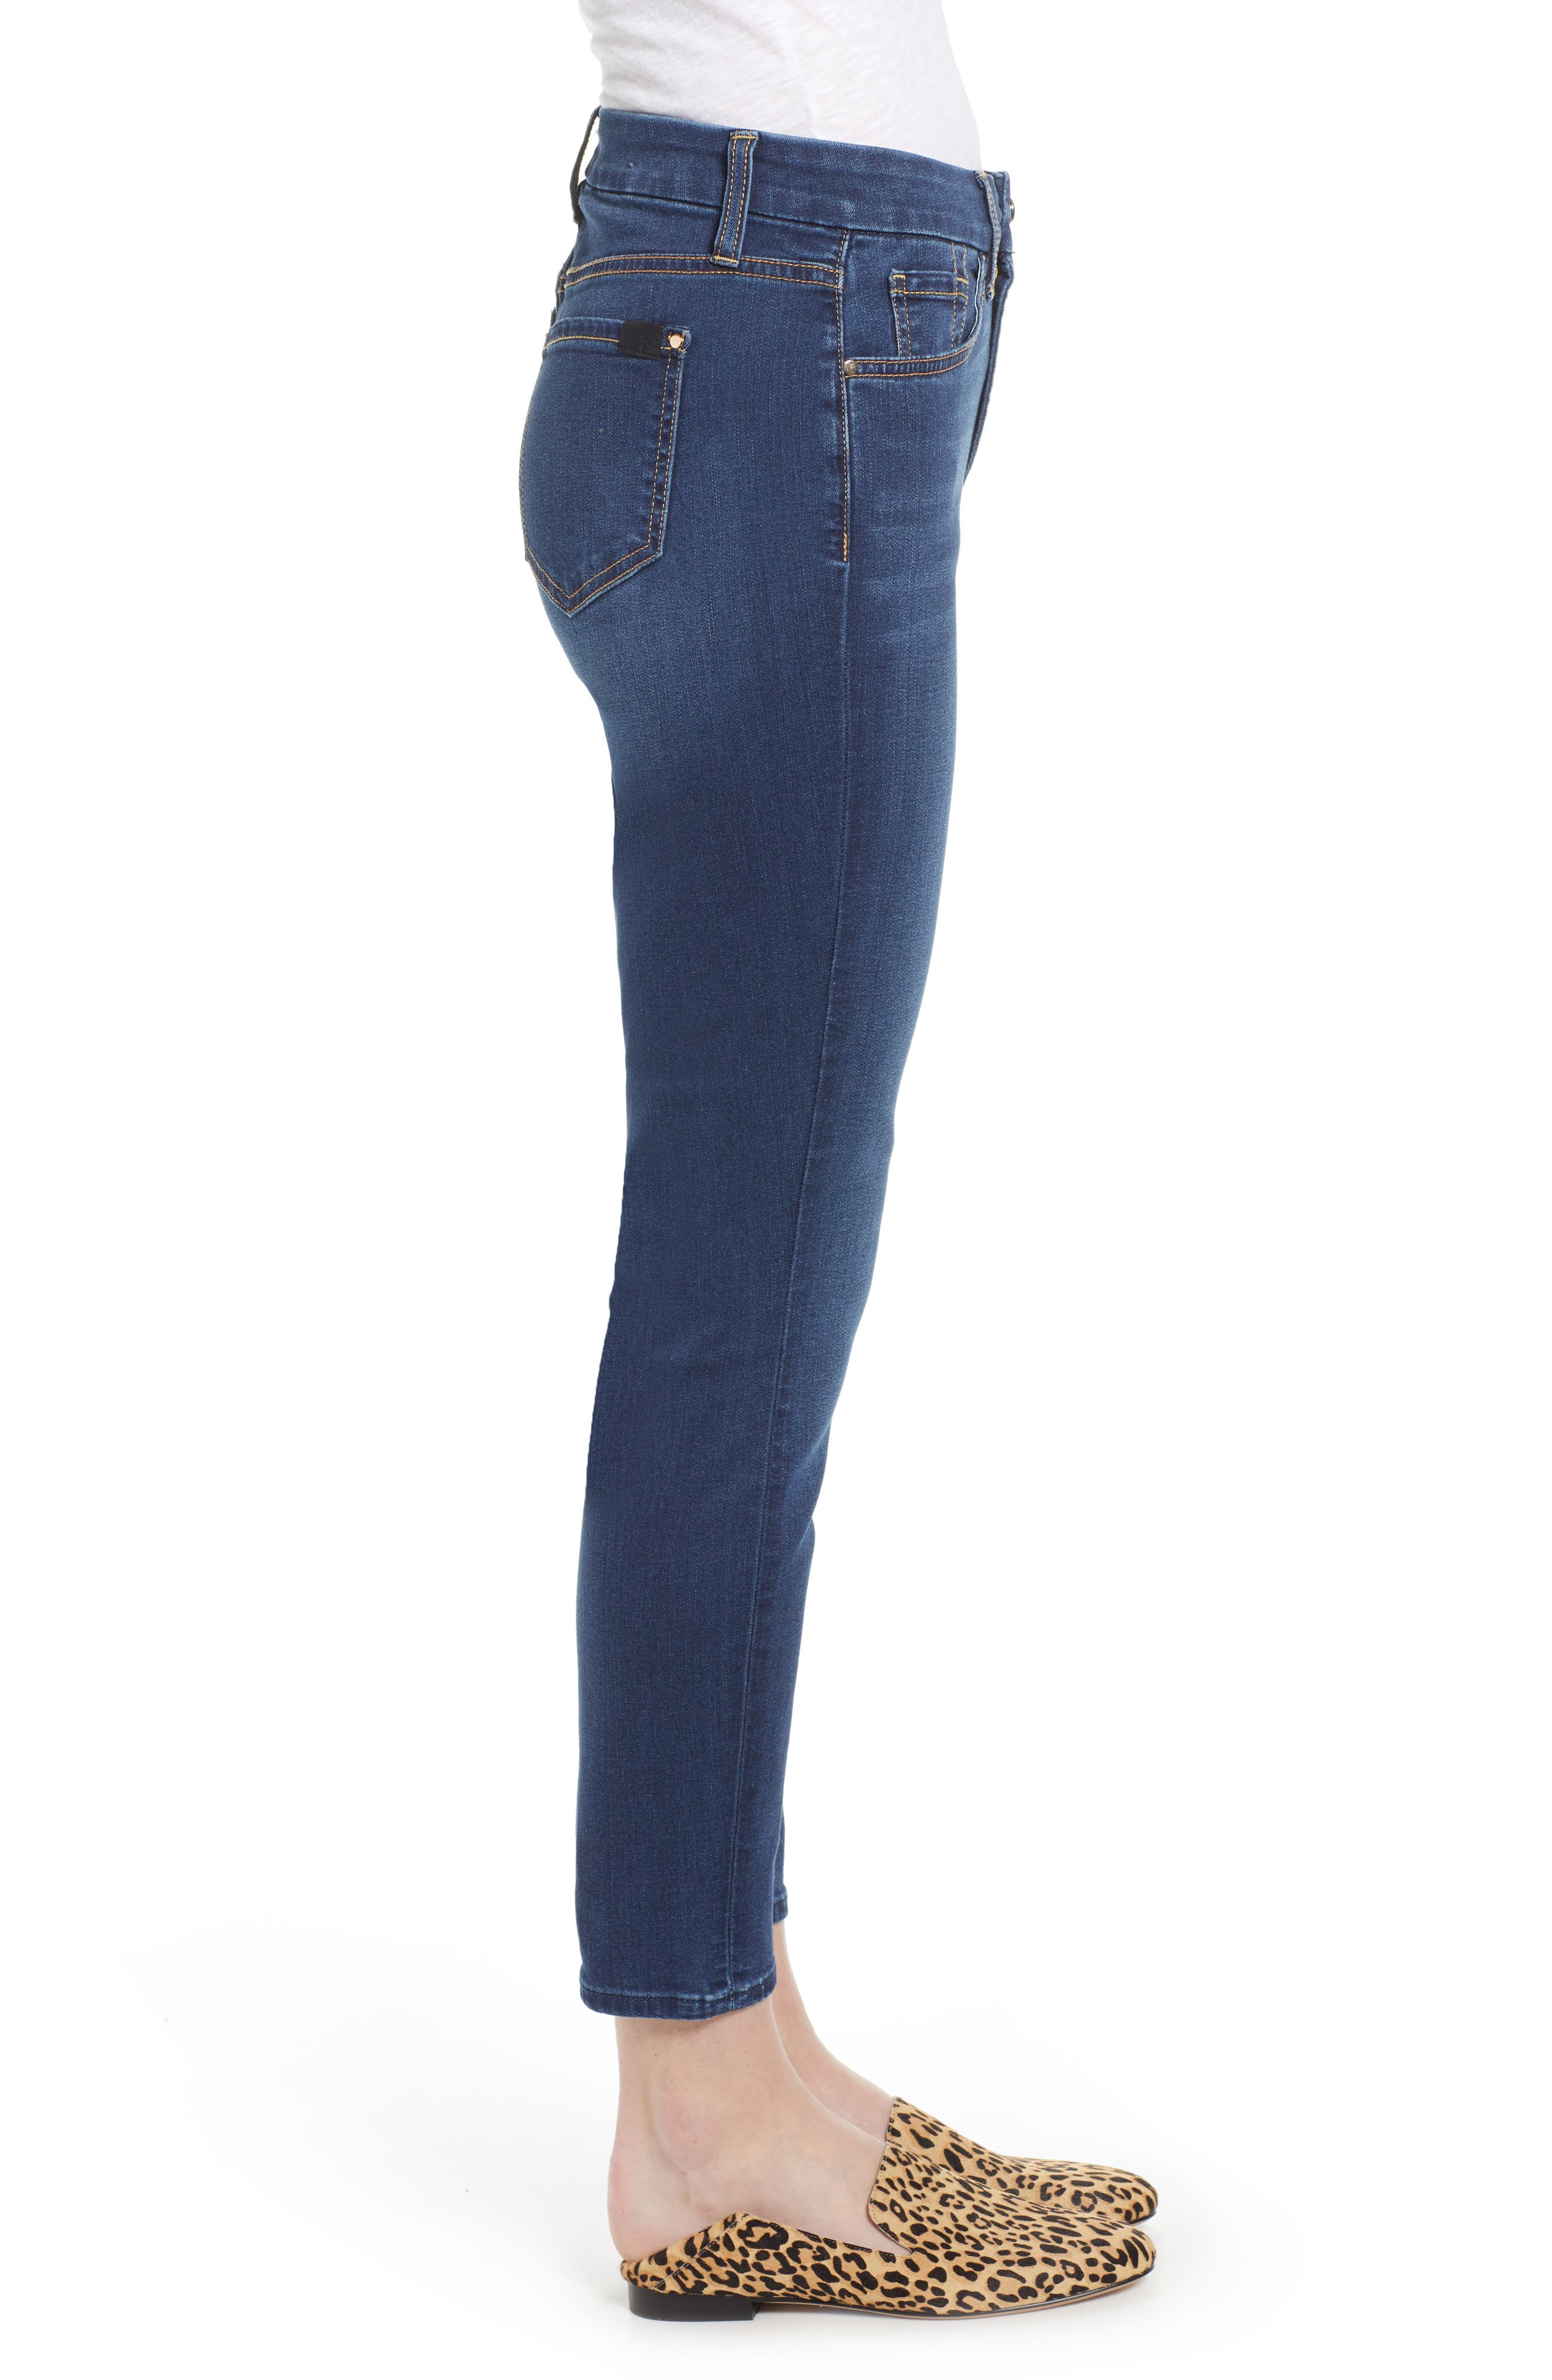 JEN7 BY 7 FOR ALL MANKIND, Ankle Skinny Jeans, Alternate thumbnail 4, color, 405